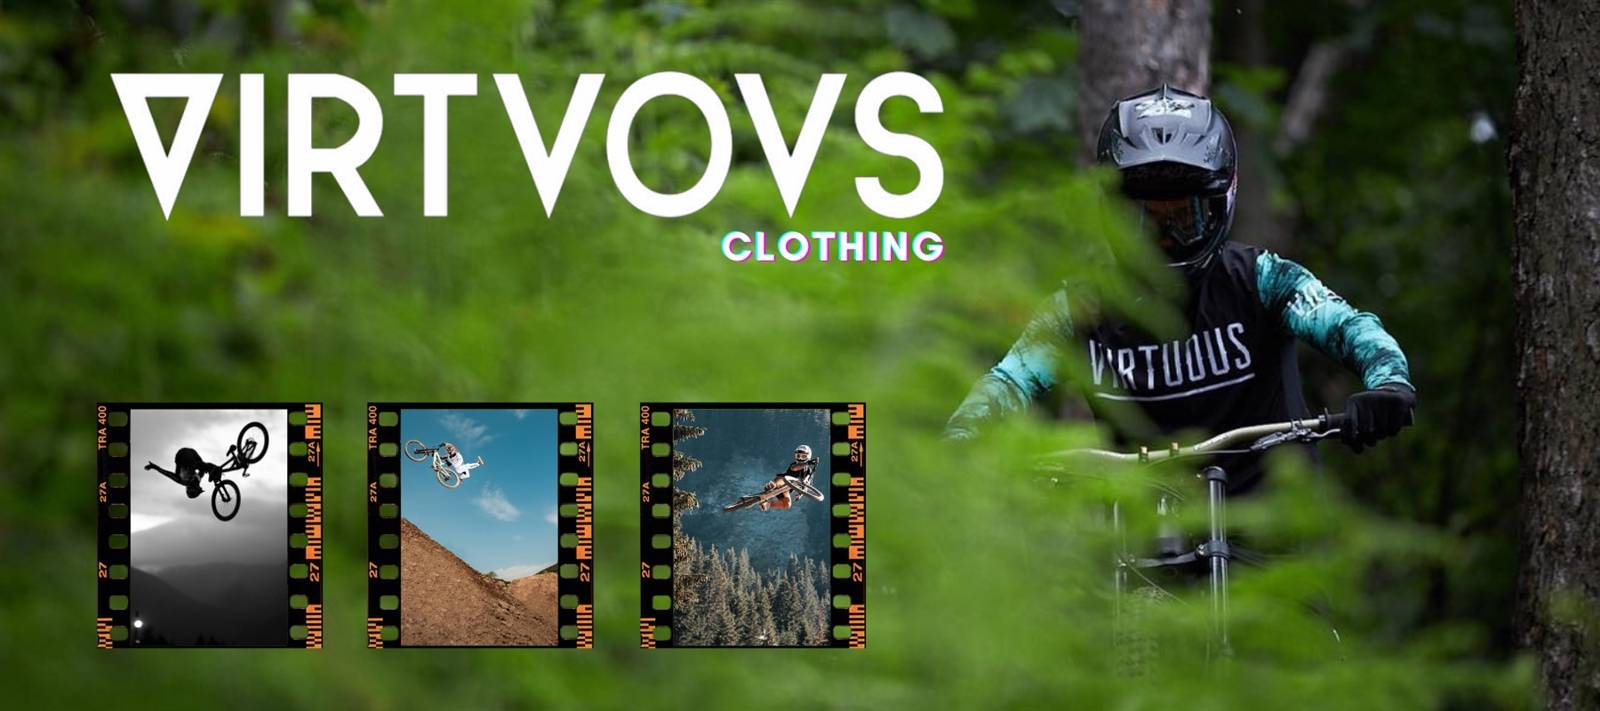 Benvenuta Virtuous Clothing!